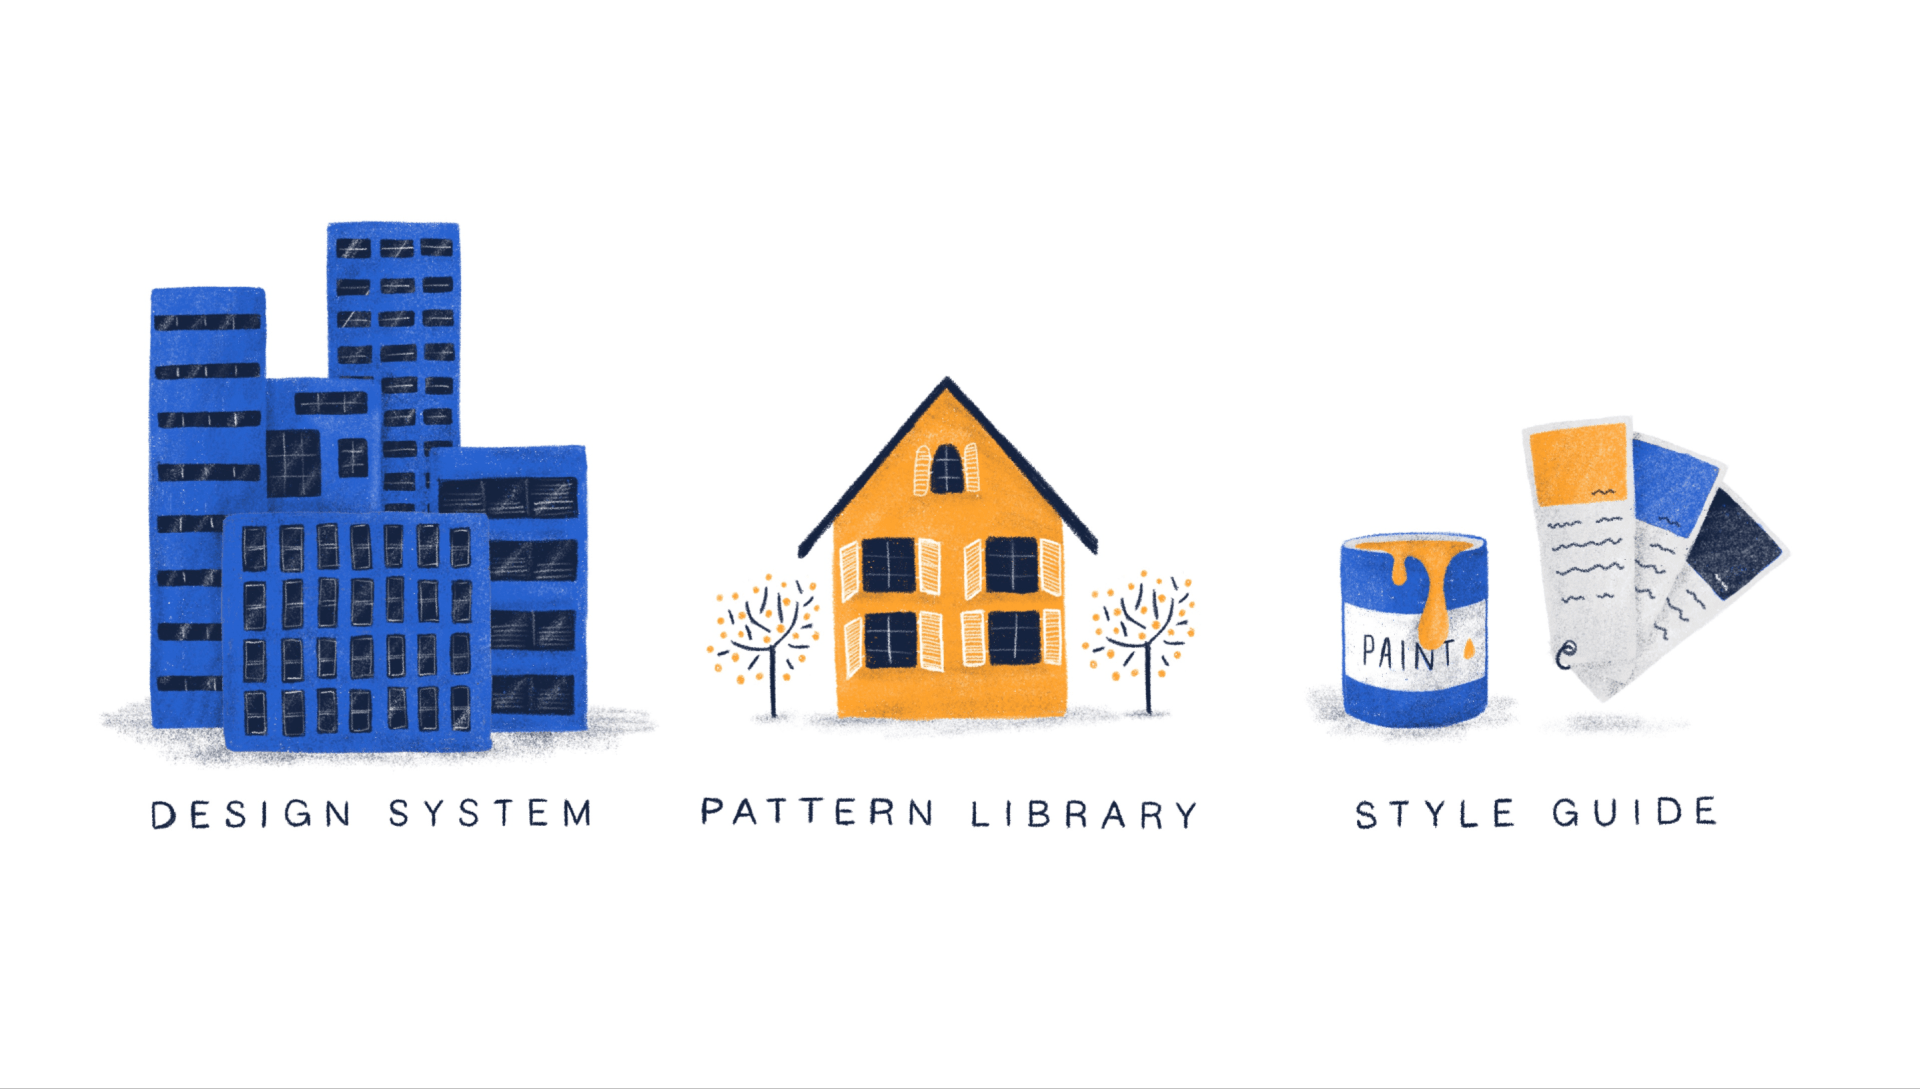 Making sense of Design Libraries, Design Systems, Pattern Libraries and Styleguides.